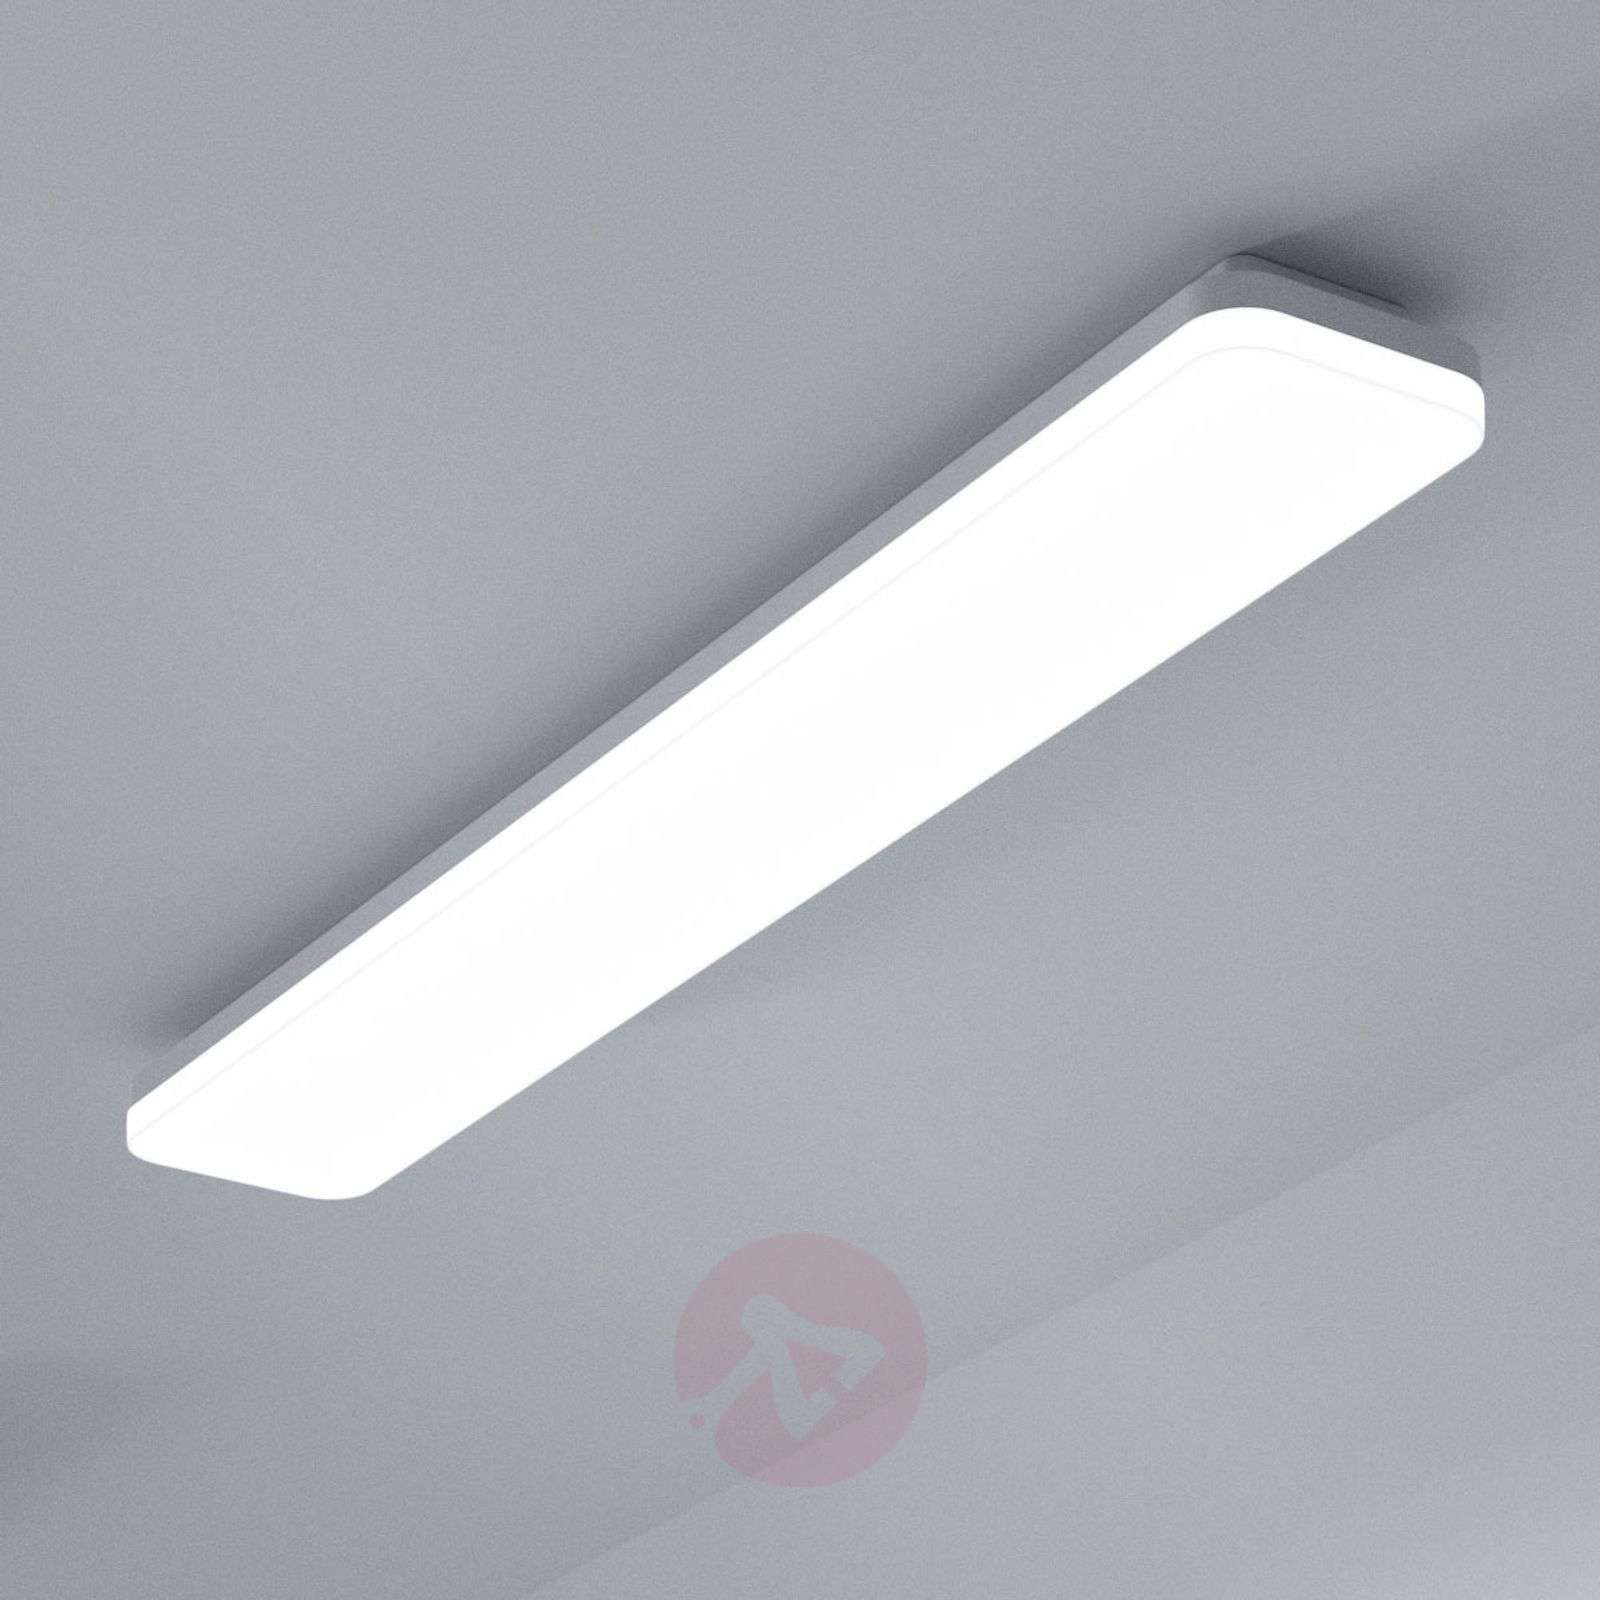 LED ceiling lamp Tamias w. sensor, 4000K IP44 90cm-9642007-04